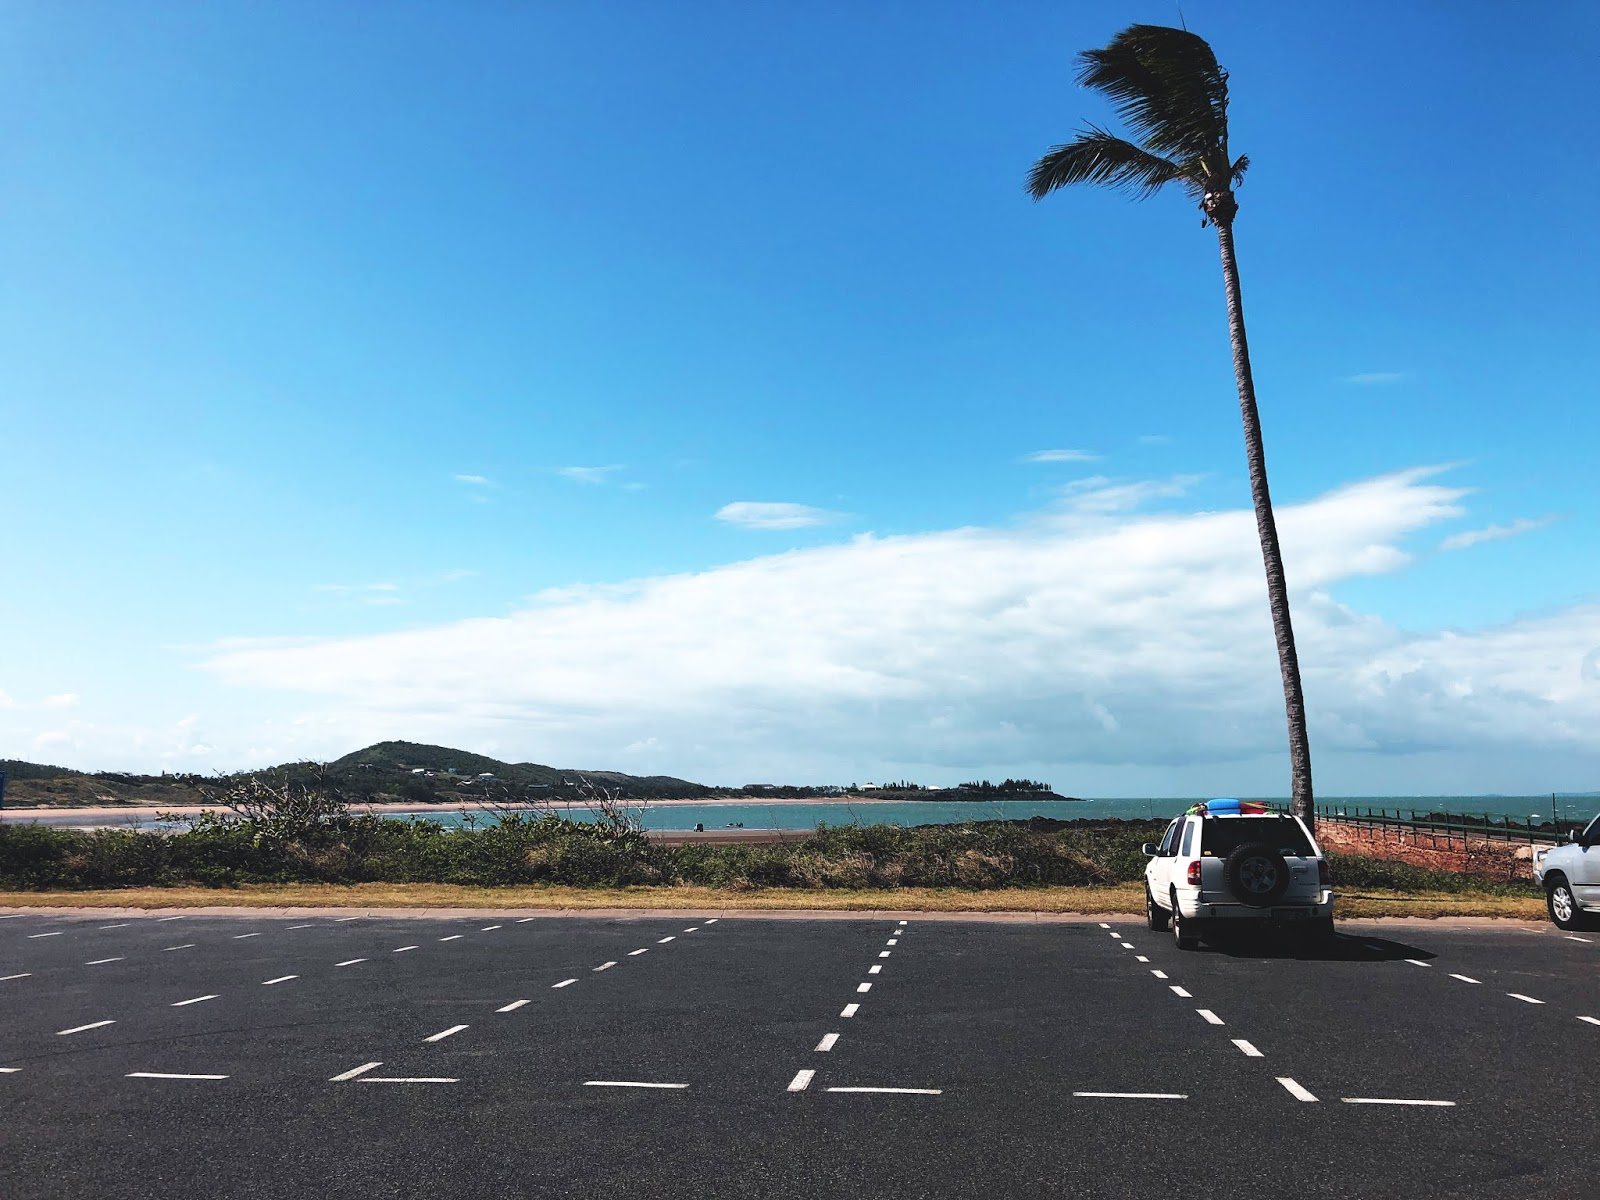 Car, palm and beach in Yeppoon